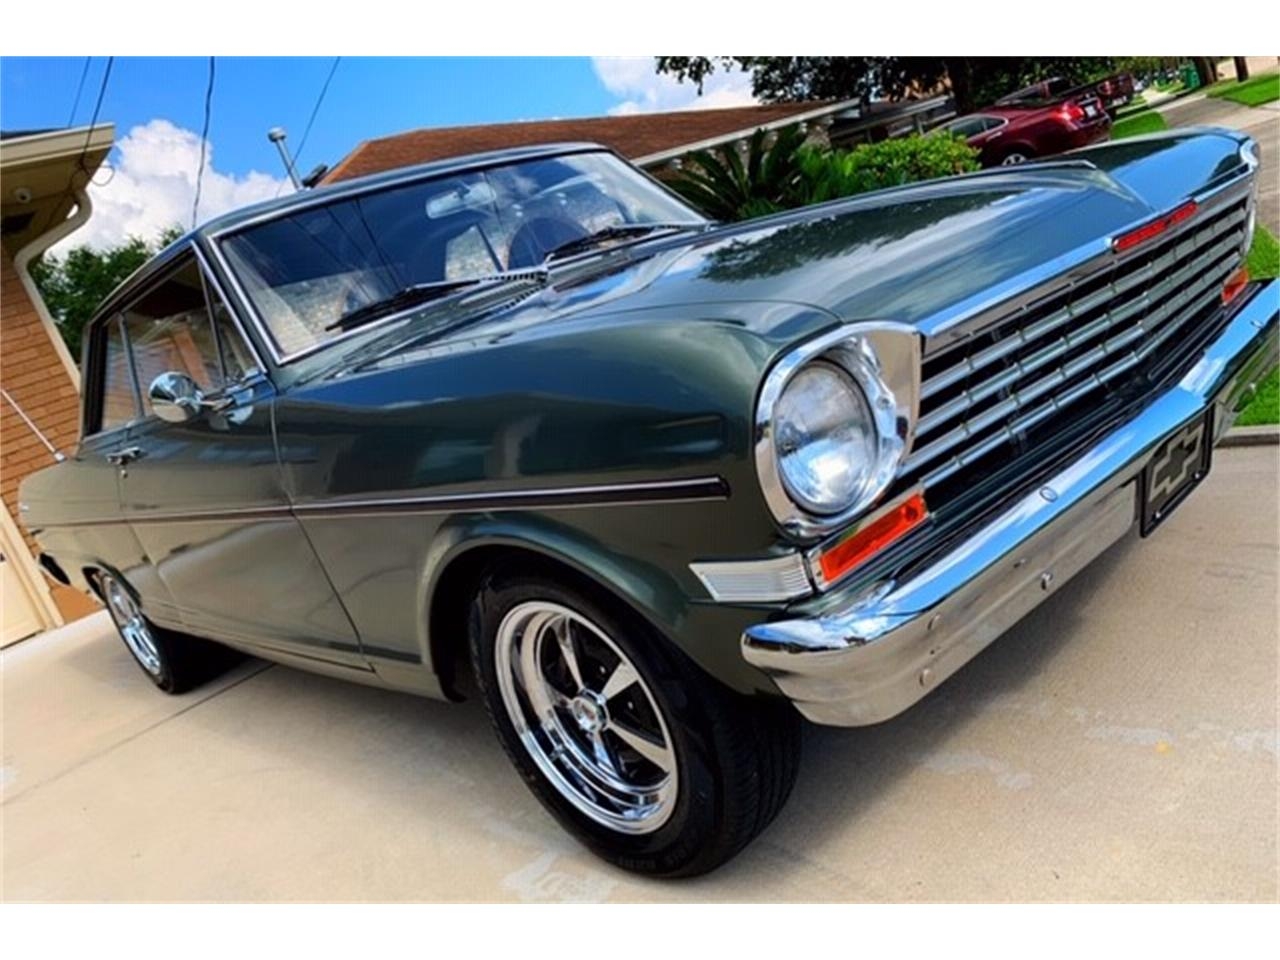 1963 Chevrolet Chevy II Nova SS for sale in Metairie, LA